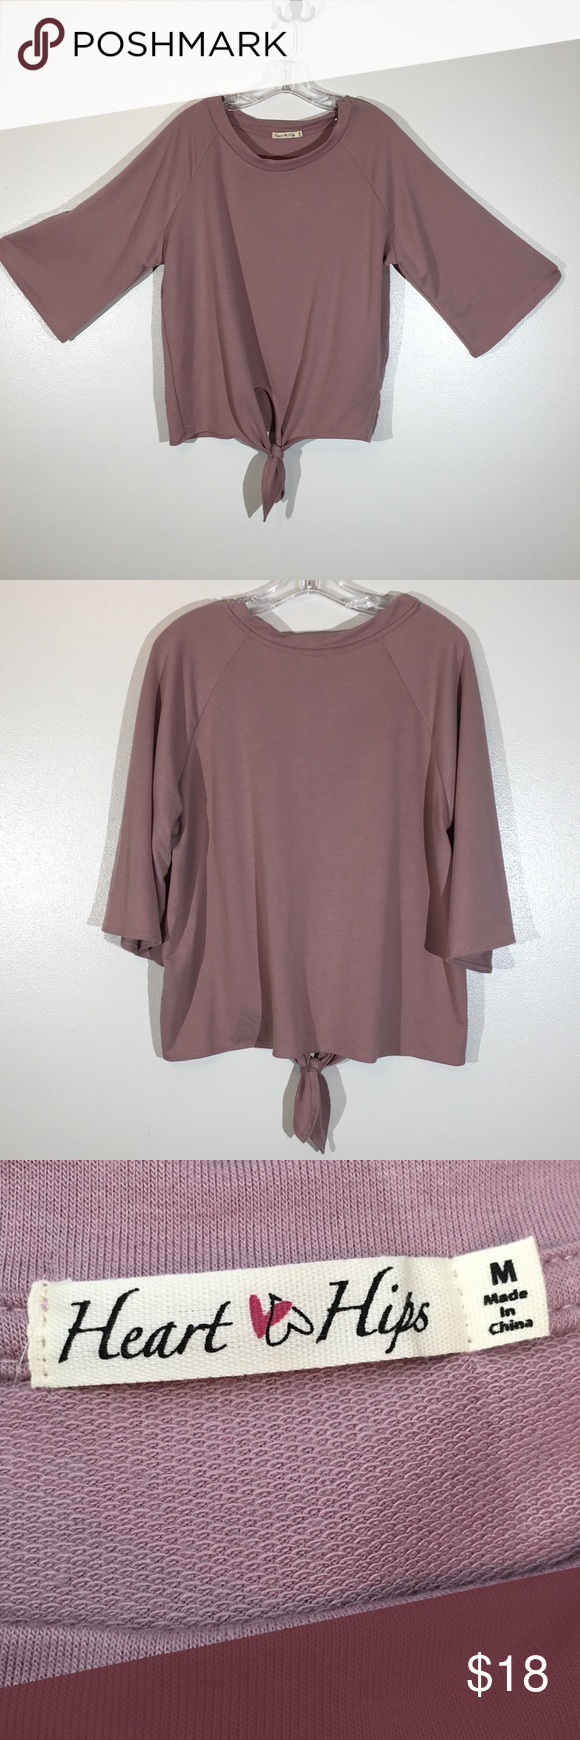 Heart & Hips mauve Oversized knit front top - M